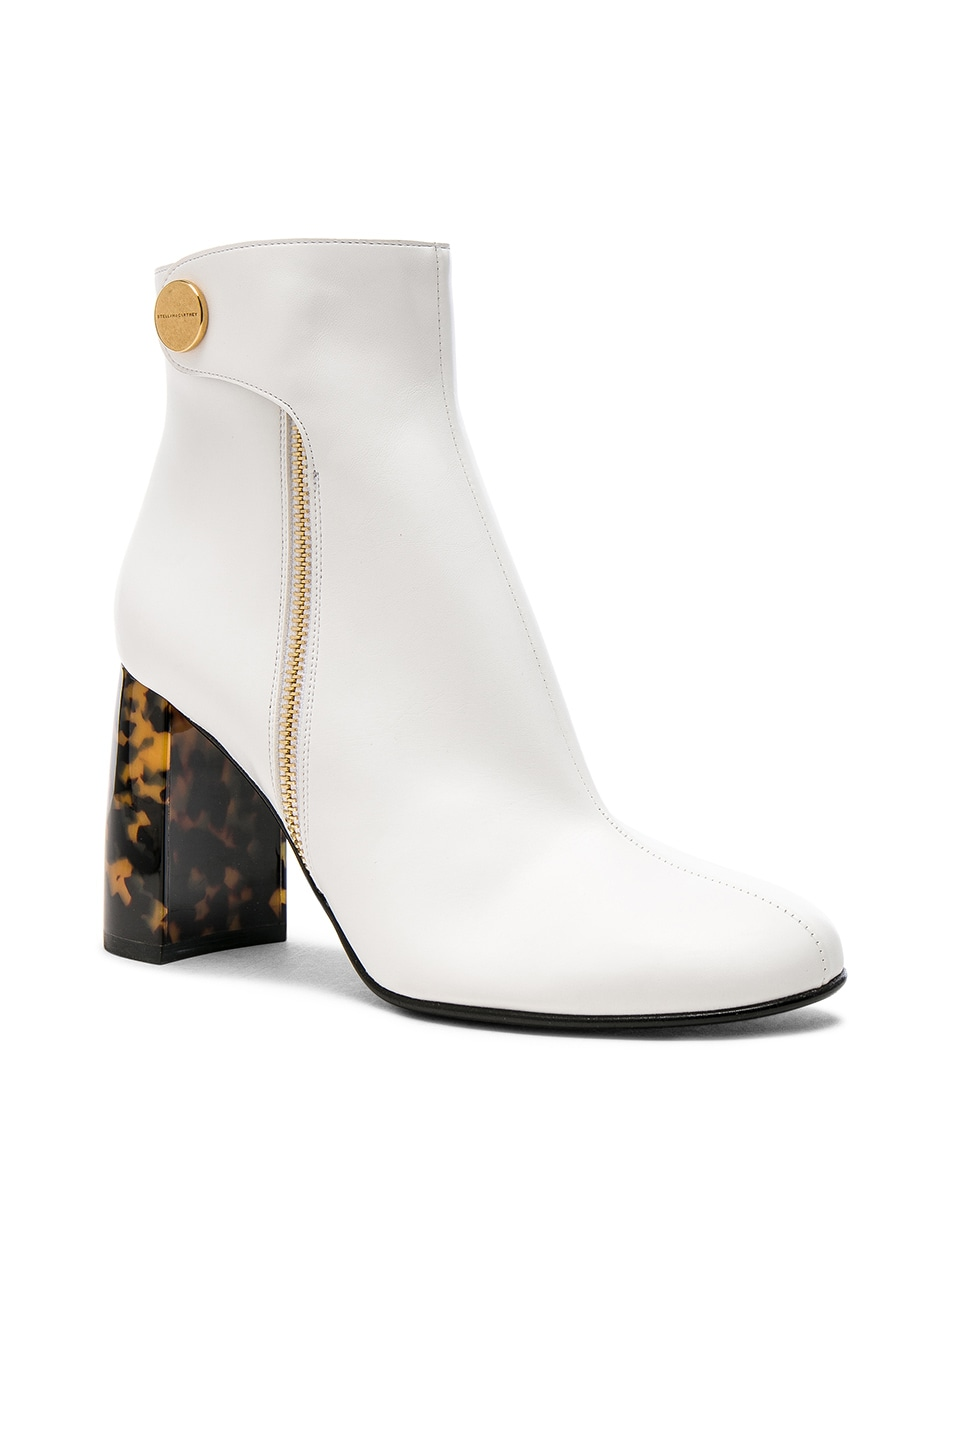 Image 2 of Stella McCartney Zip Ankle Boots in White